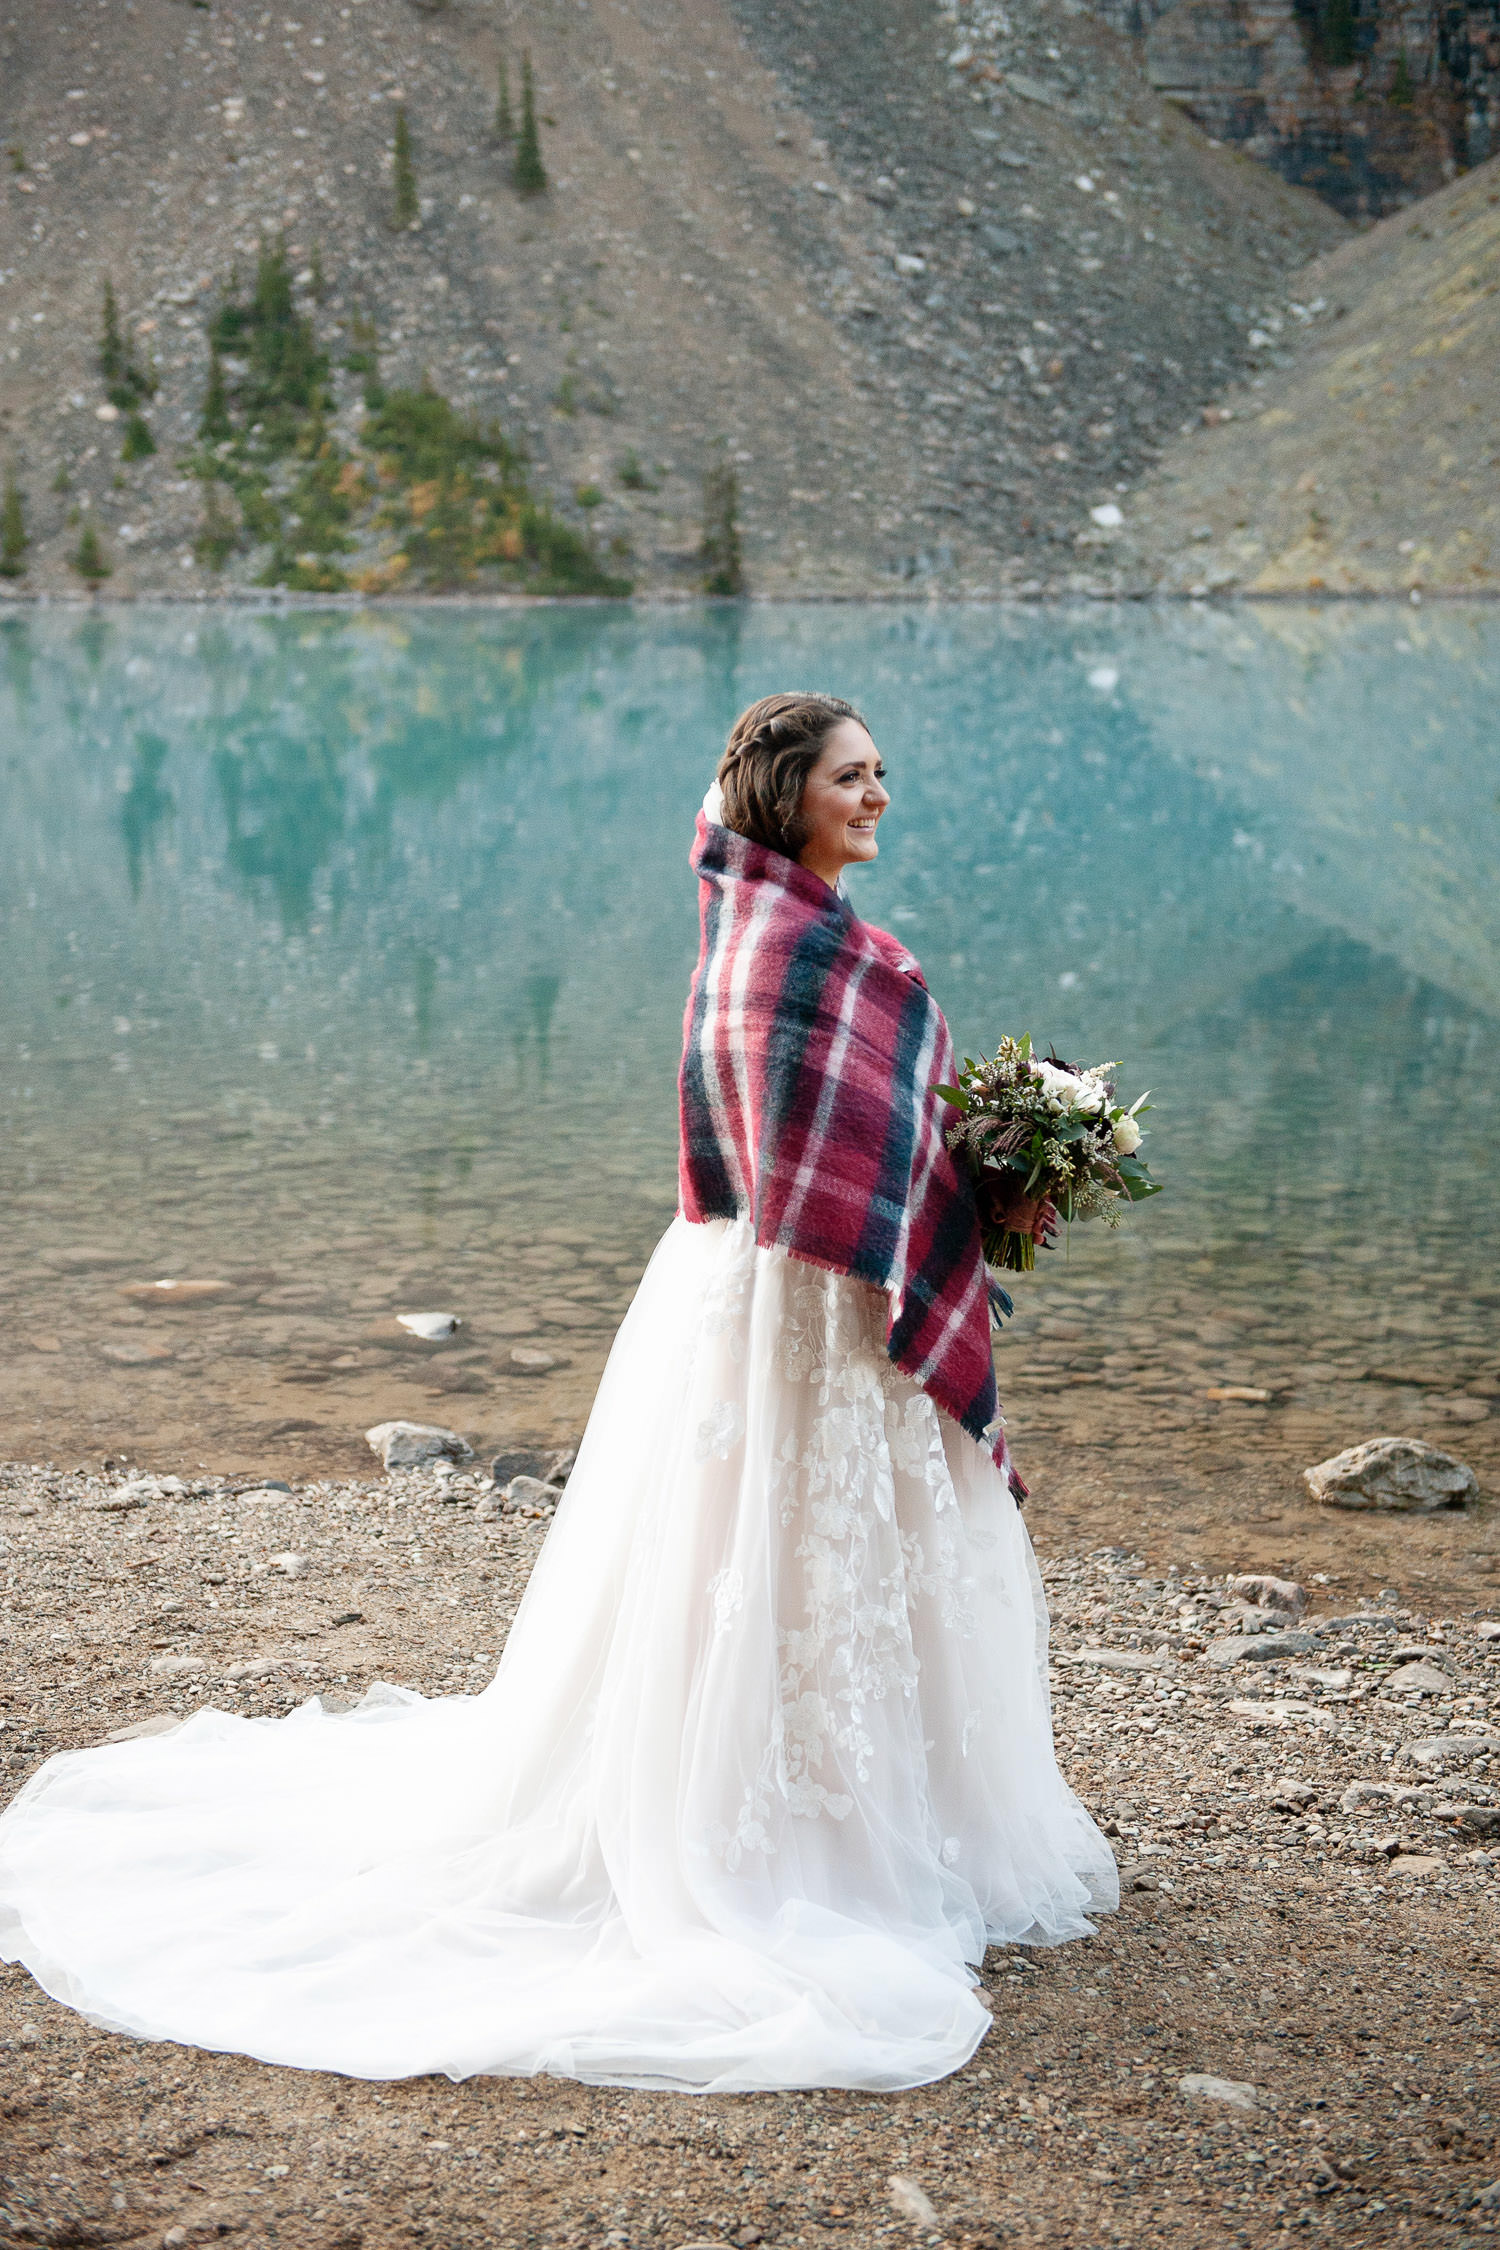 Moraine Lake bride wrapped in a plaid blanket captured by Tara Whittaker Photography